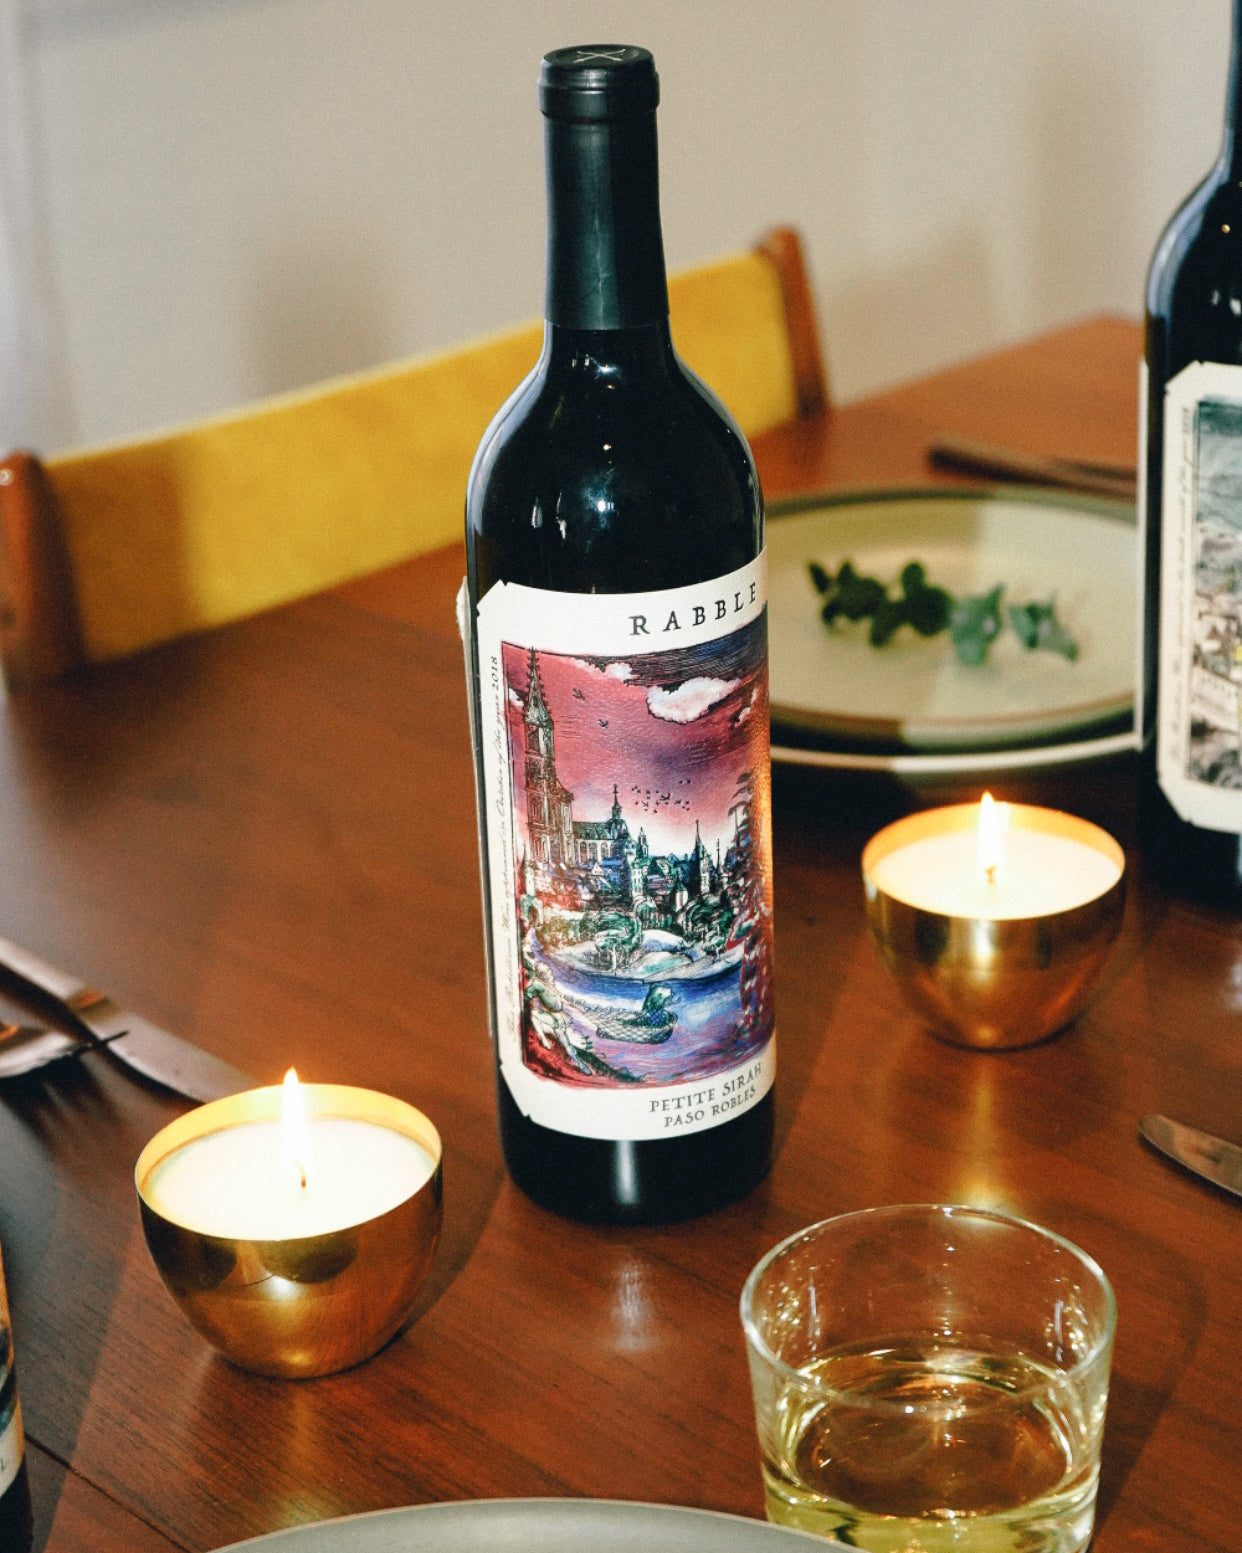 Rabble Paso Robles California Petite Sirah, a bold full-bodied red wine with Augmented Reality (AR) Labels